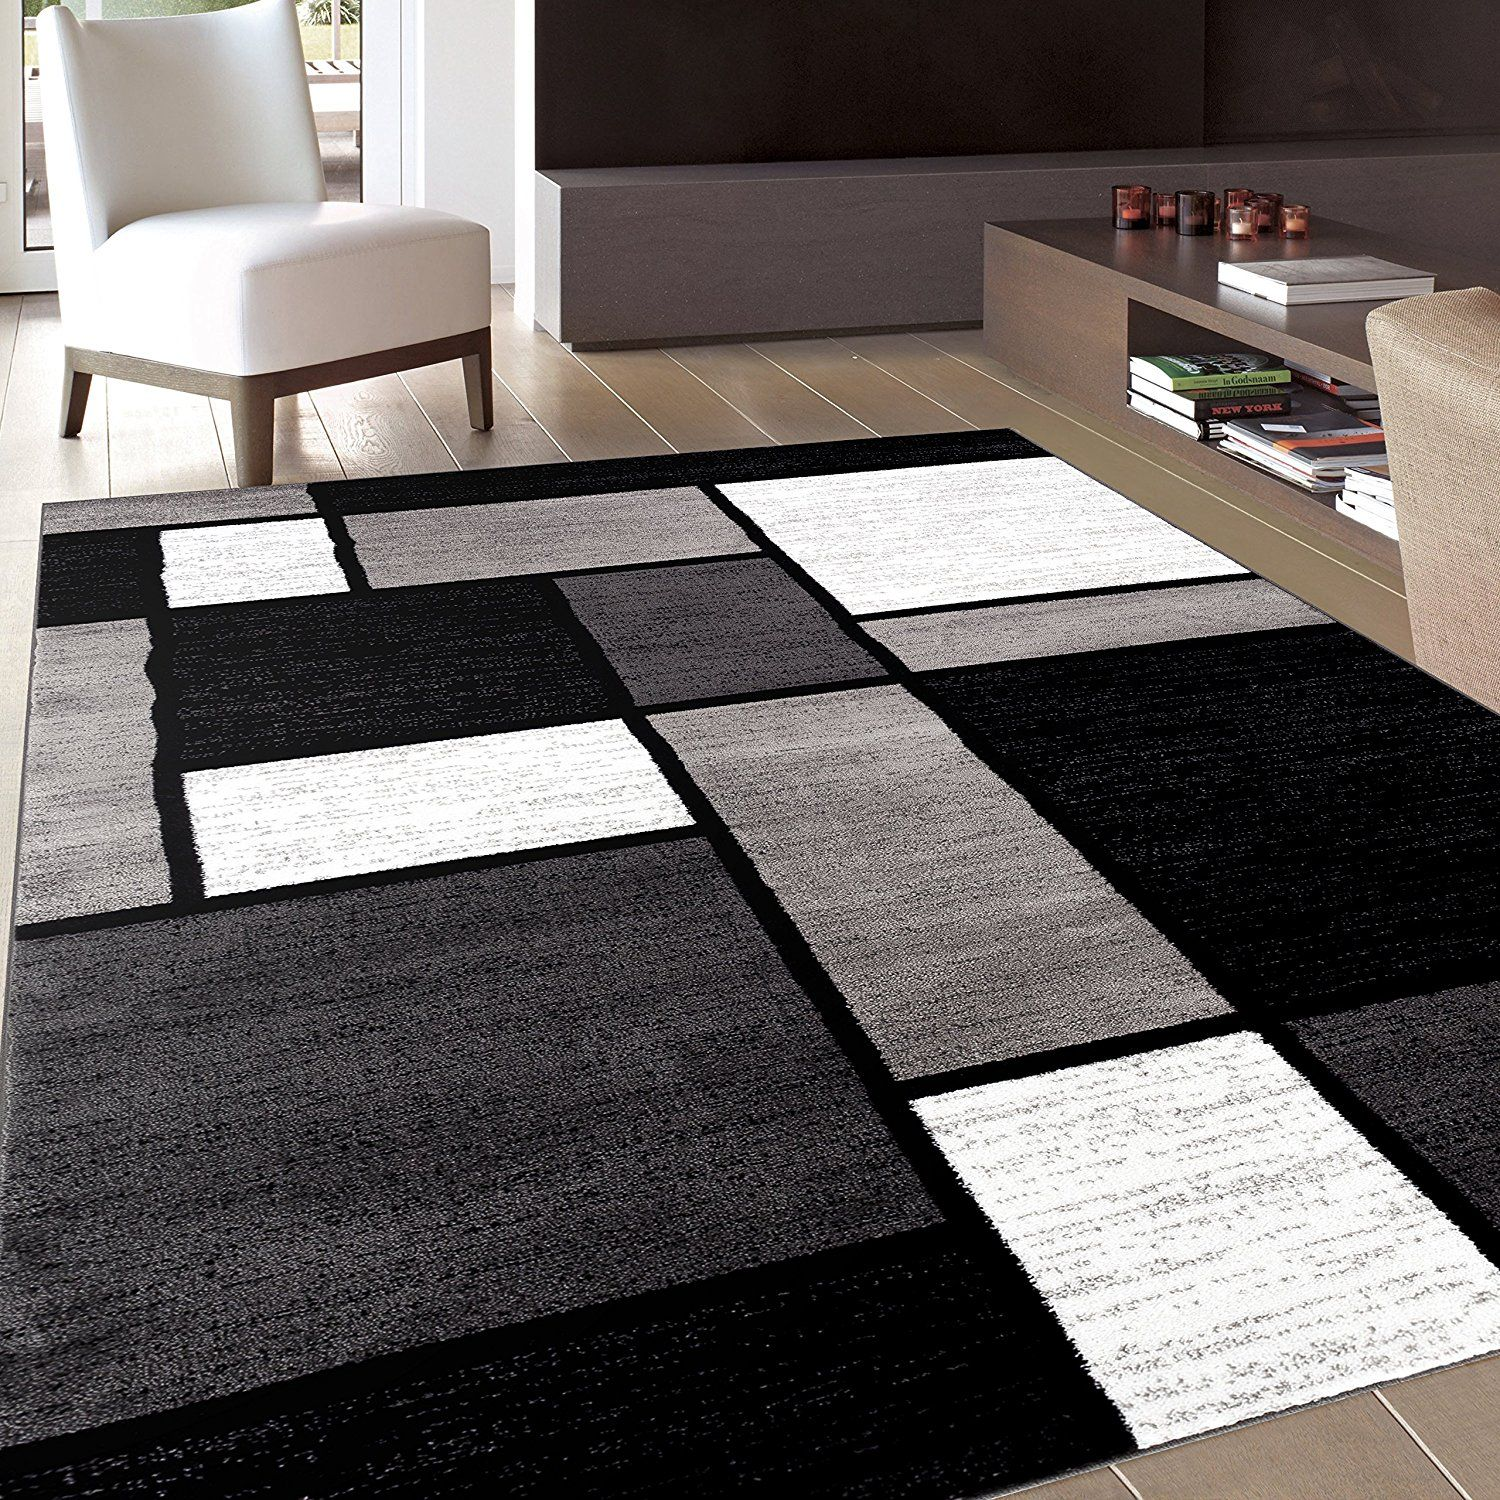 Choosing the contemporary area rugs for your home ...